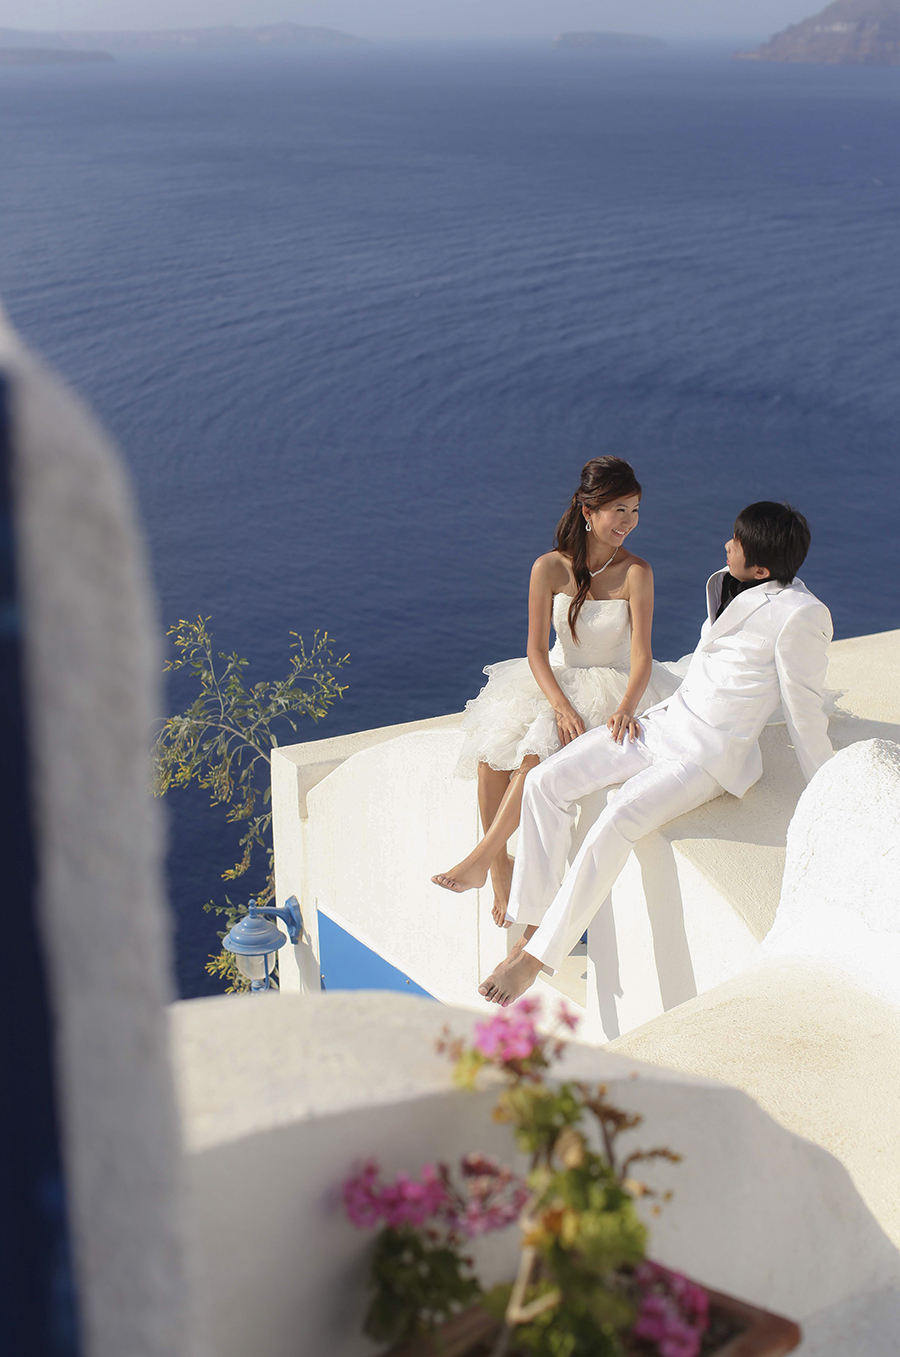 santorini greece . wedding photography by kurt ahs . 3085.jpg